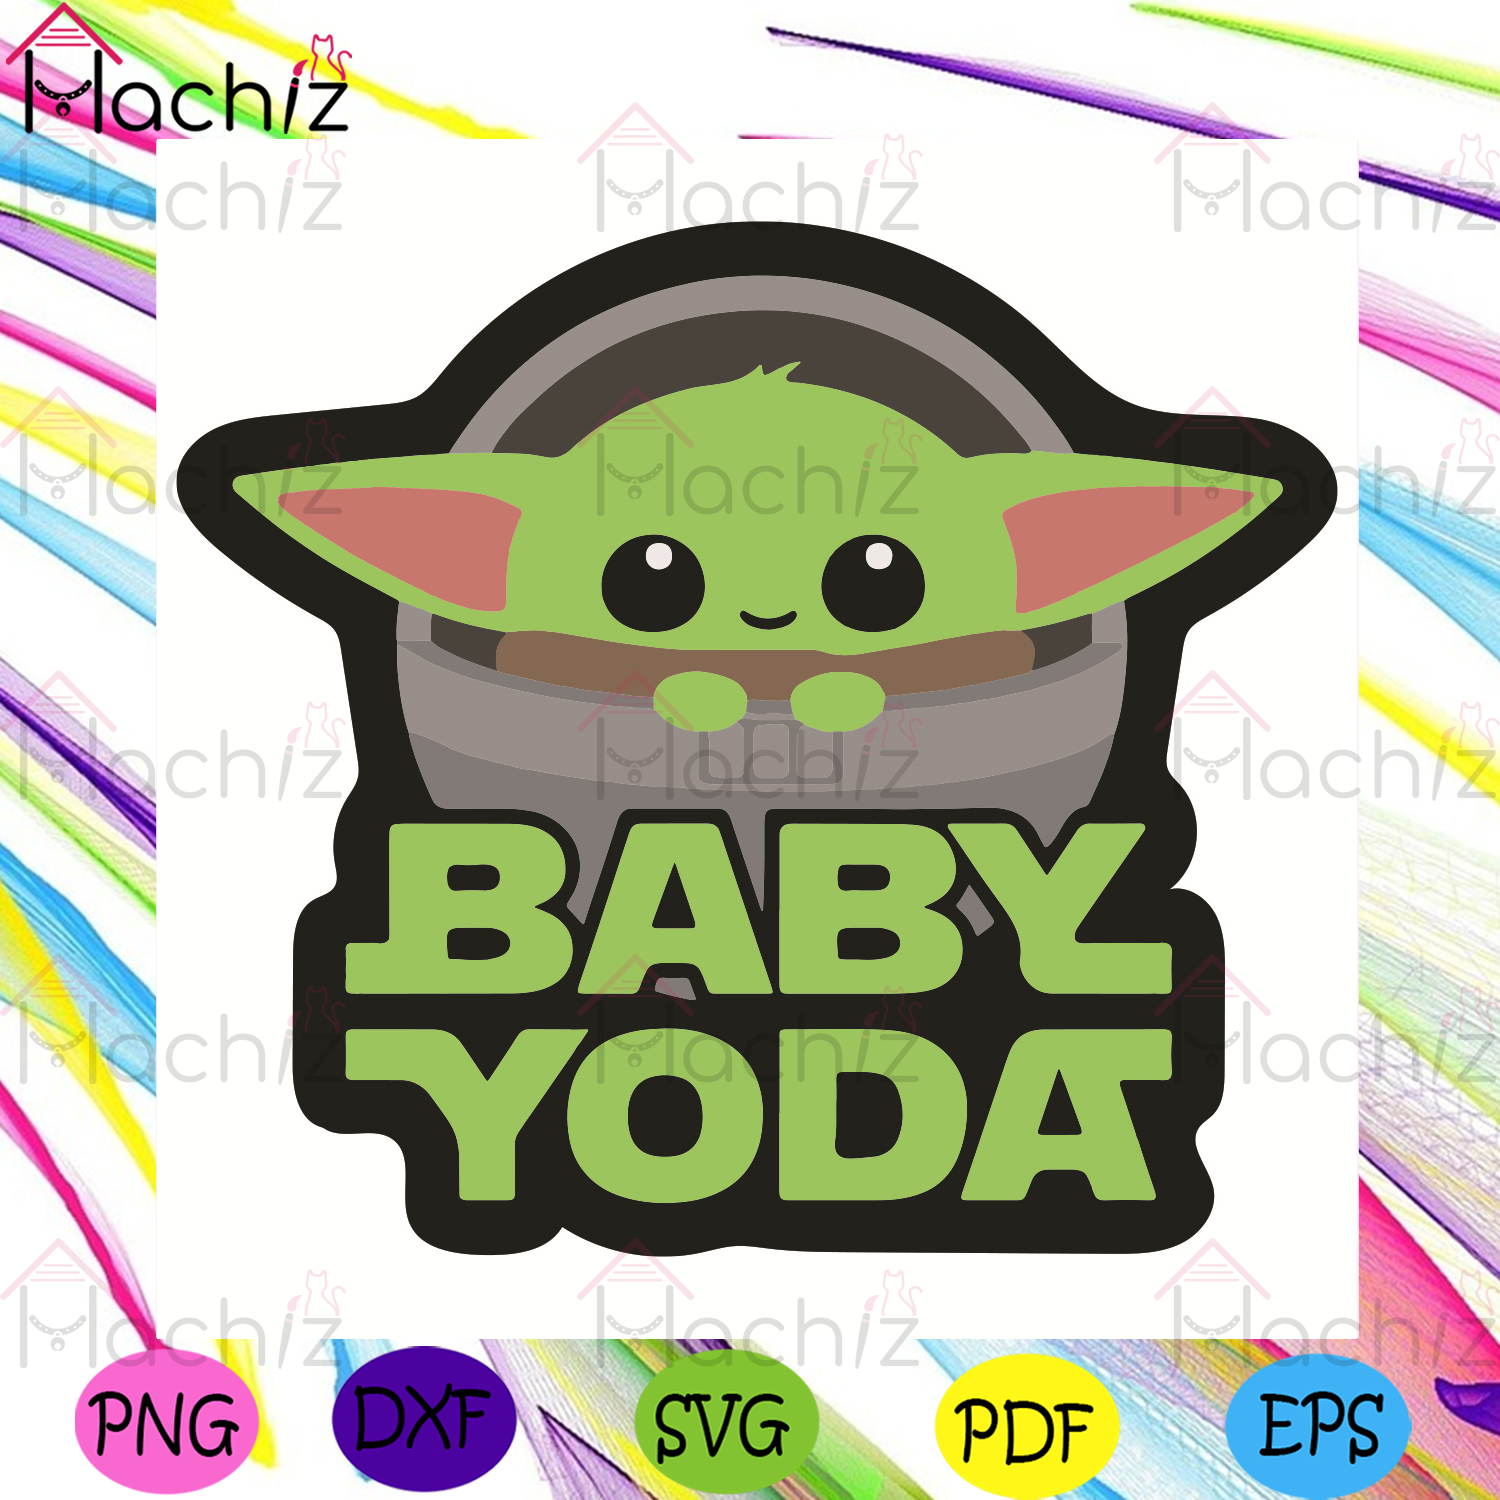 Baby Yoda Svg, Trending Svg, Yoda Svg, Baby Yoda Lovers Svg, Star Wars Svg, Star Wars Fans Svg, Star Wars Gifts Svg, Ufos Svg, Darth Vader Svg, Cute Yoda Svg, Wars Fans Svg, Planet Svg, Baby Yoda Fans Svg, Baby Yoda Gifts Svg, Hero Svg